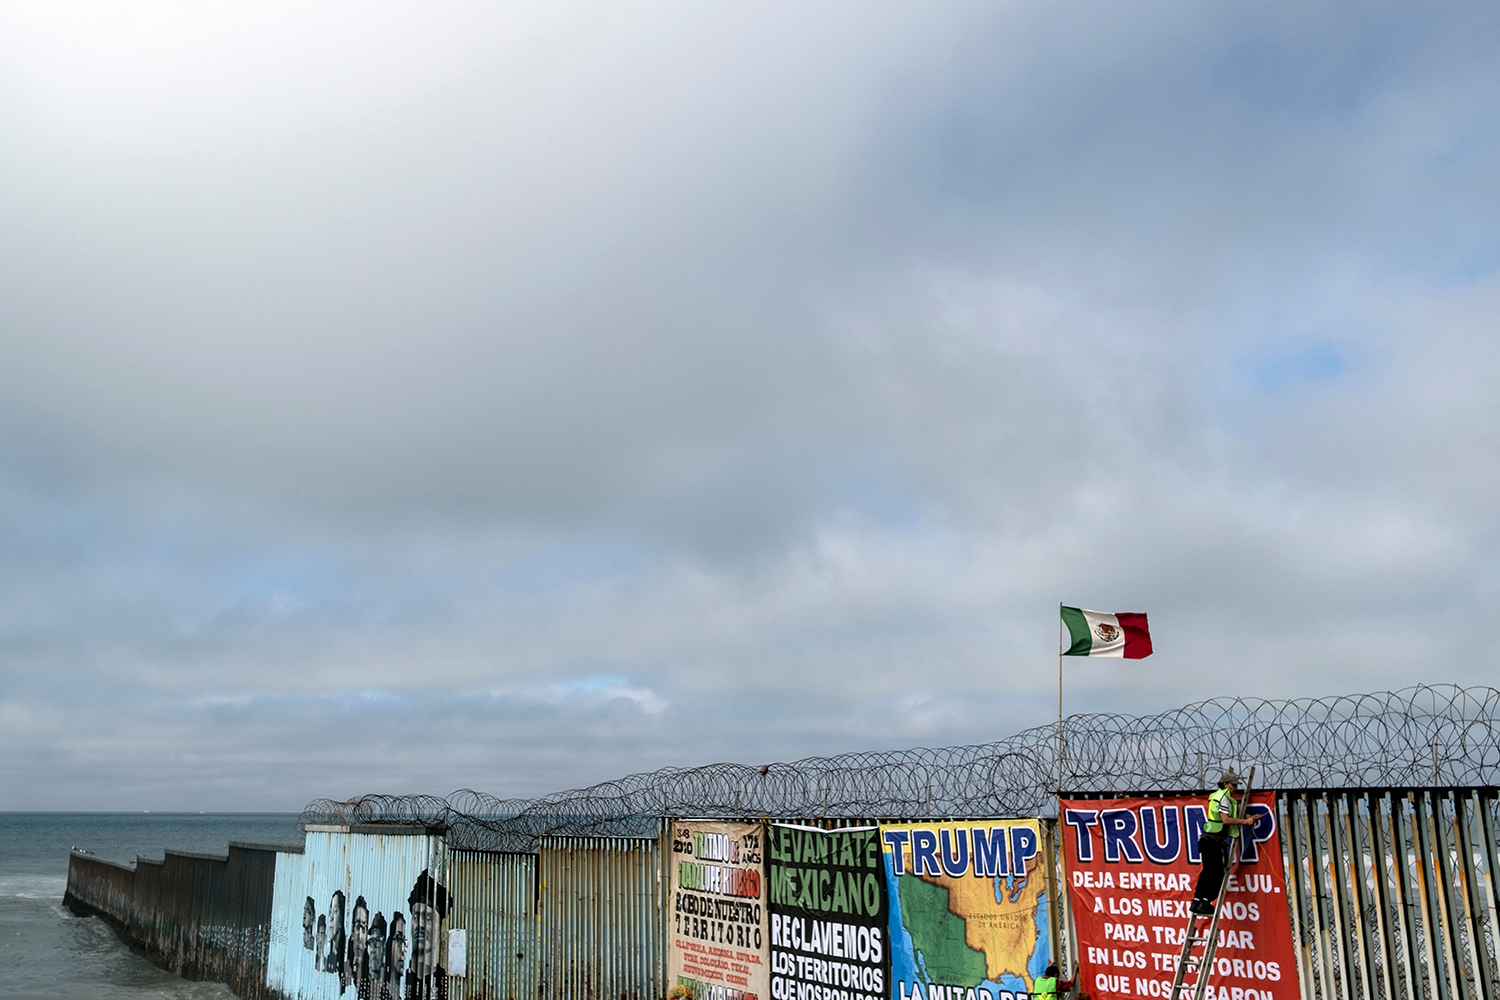 A member of Border Angels hangs a banner protesting U.S. President Donald Trump on the U.S.-Mexico border fence in Playas de Tijuana, Baja California state, Mexico, on Feb. 2.  GUILLERMO ARIAS/AFP via Getty Images